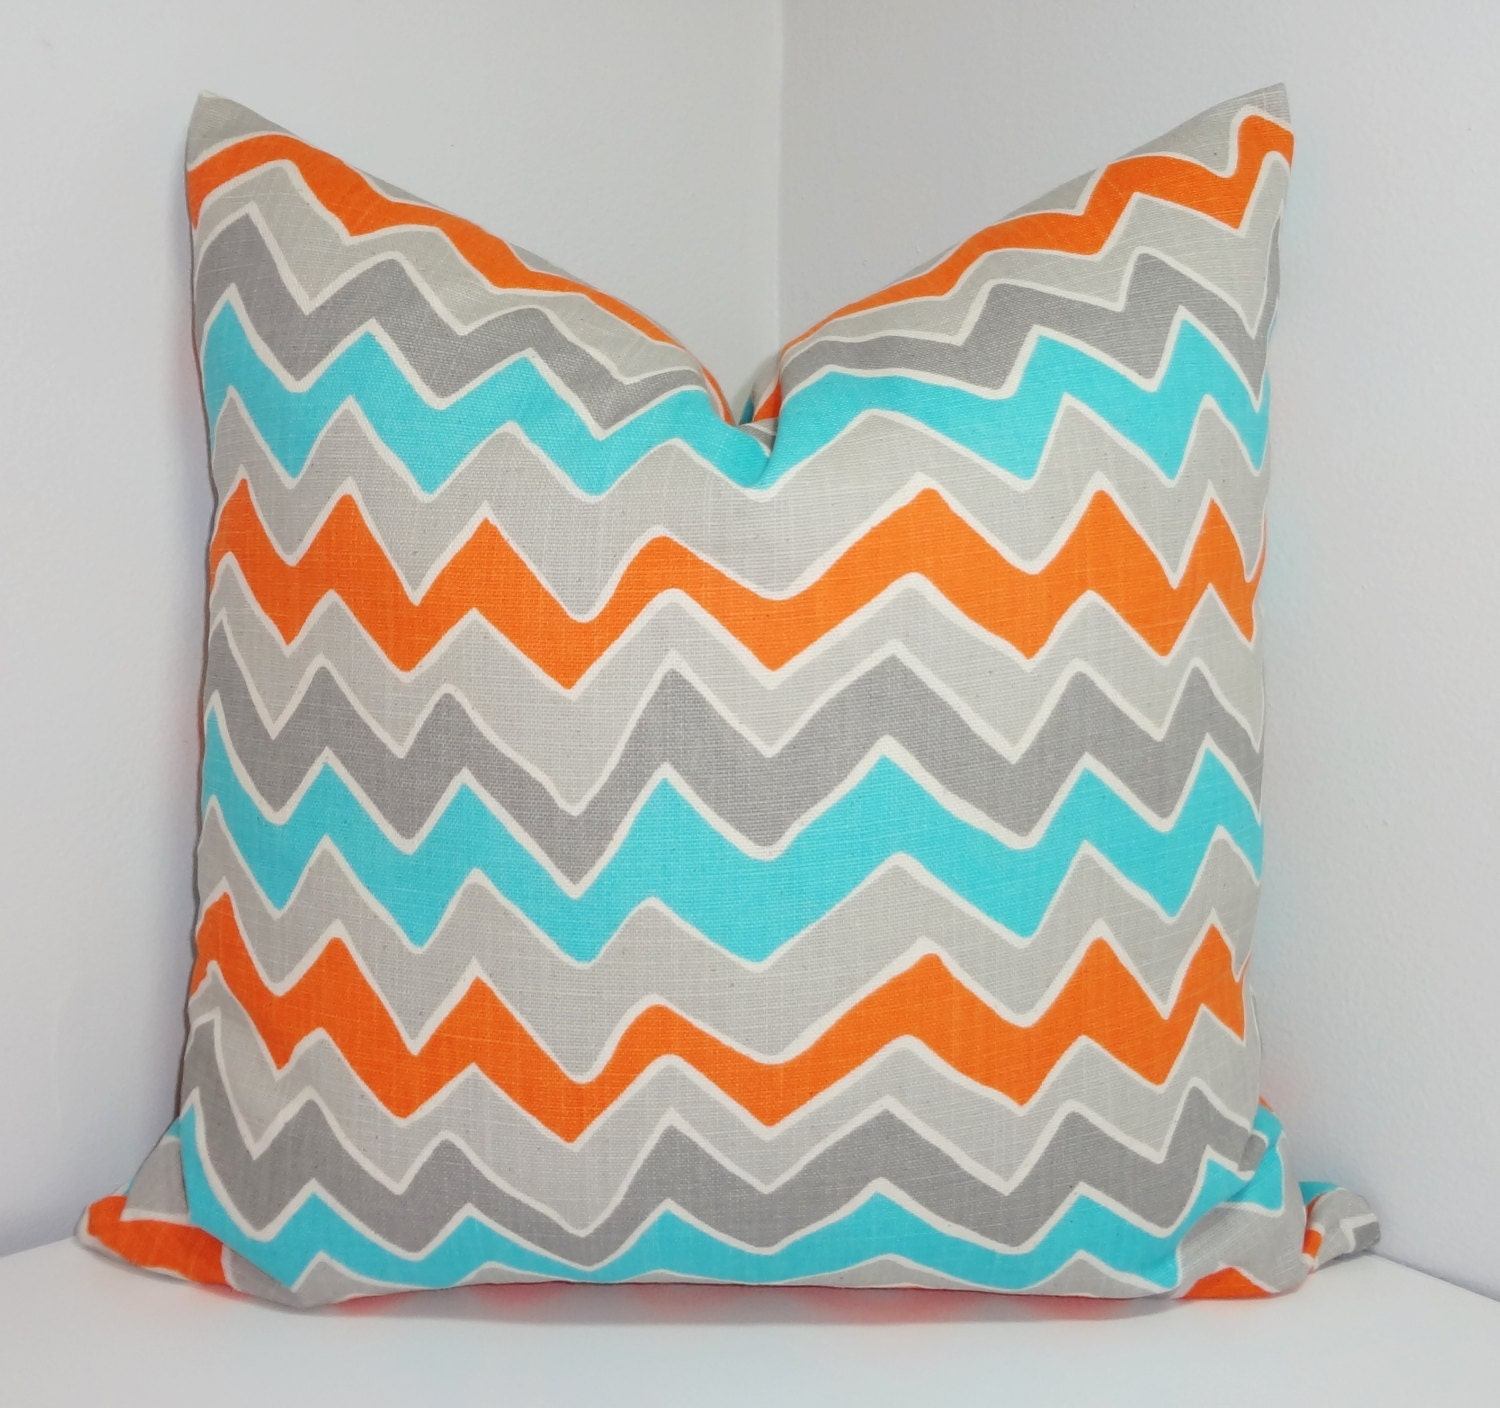 turquoise blue grey orange chevron pillow cover by homeliving. Black Bedroom Furniture Sets. Home Design Ideas